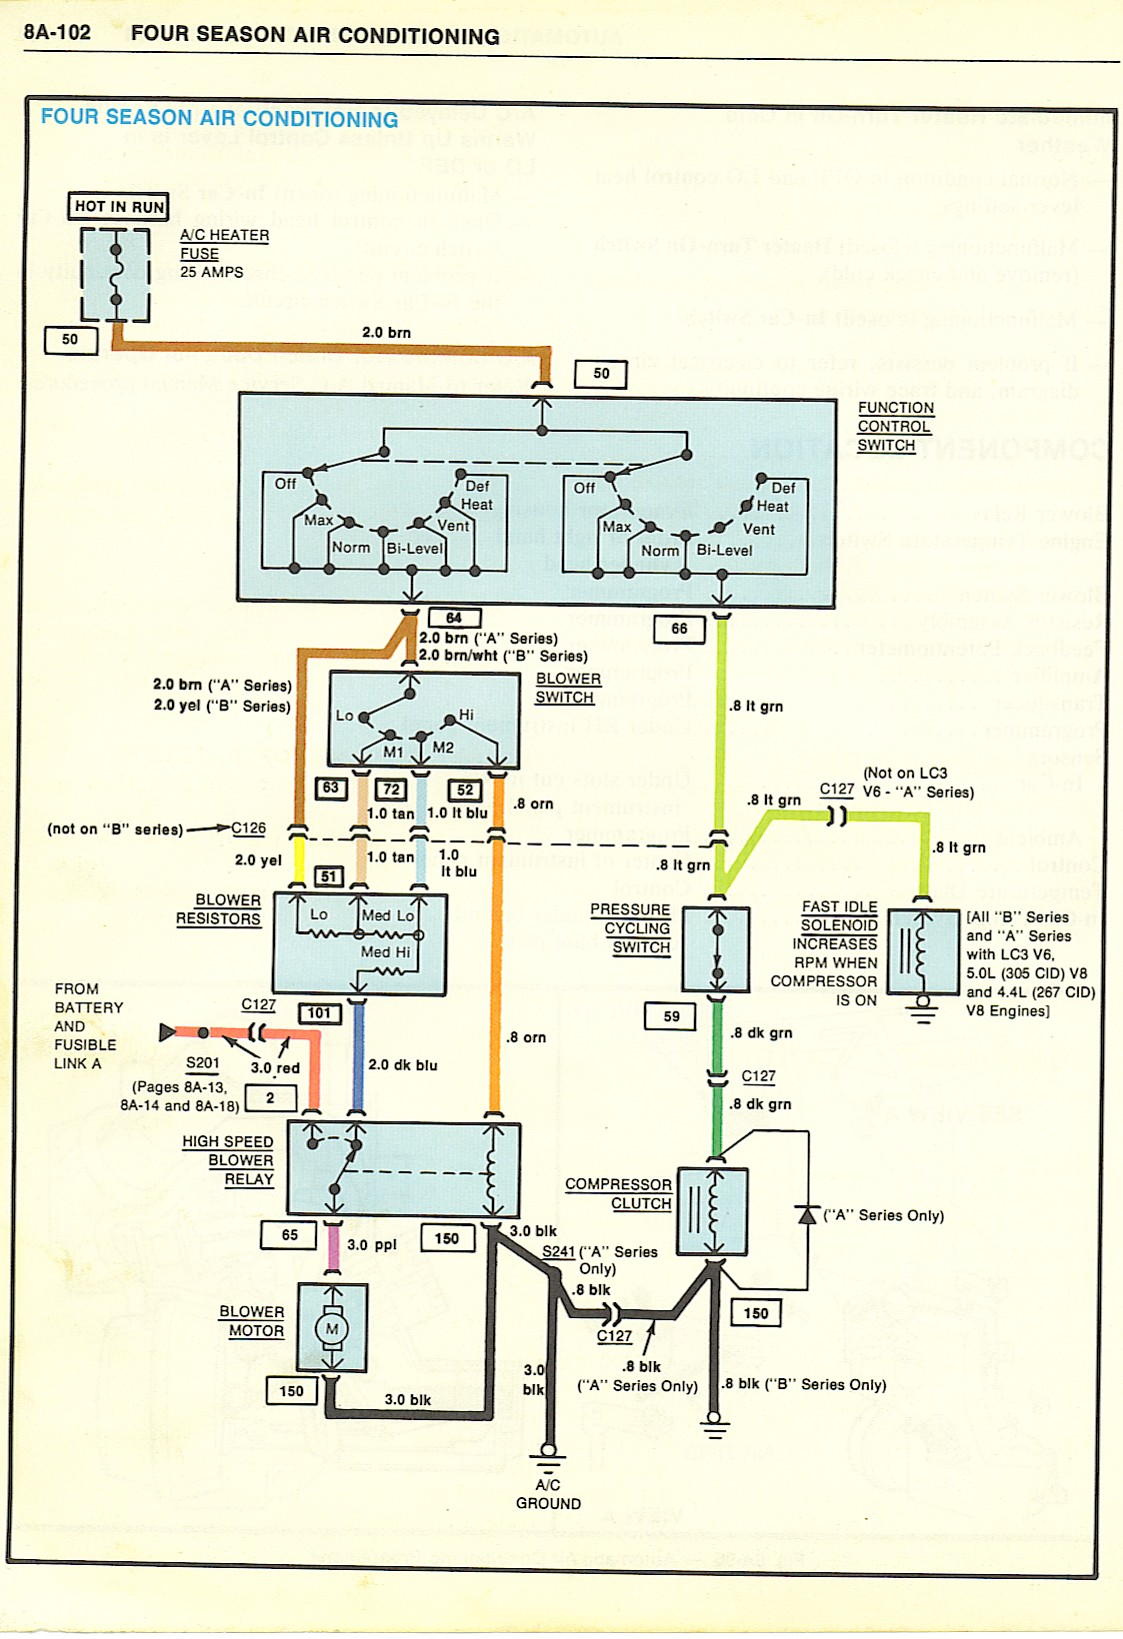 1979 el camino air conditioning wiring diagram